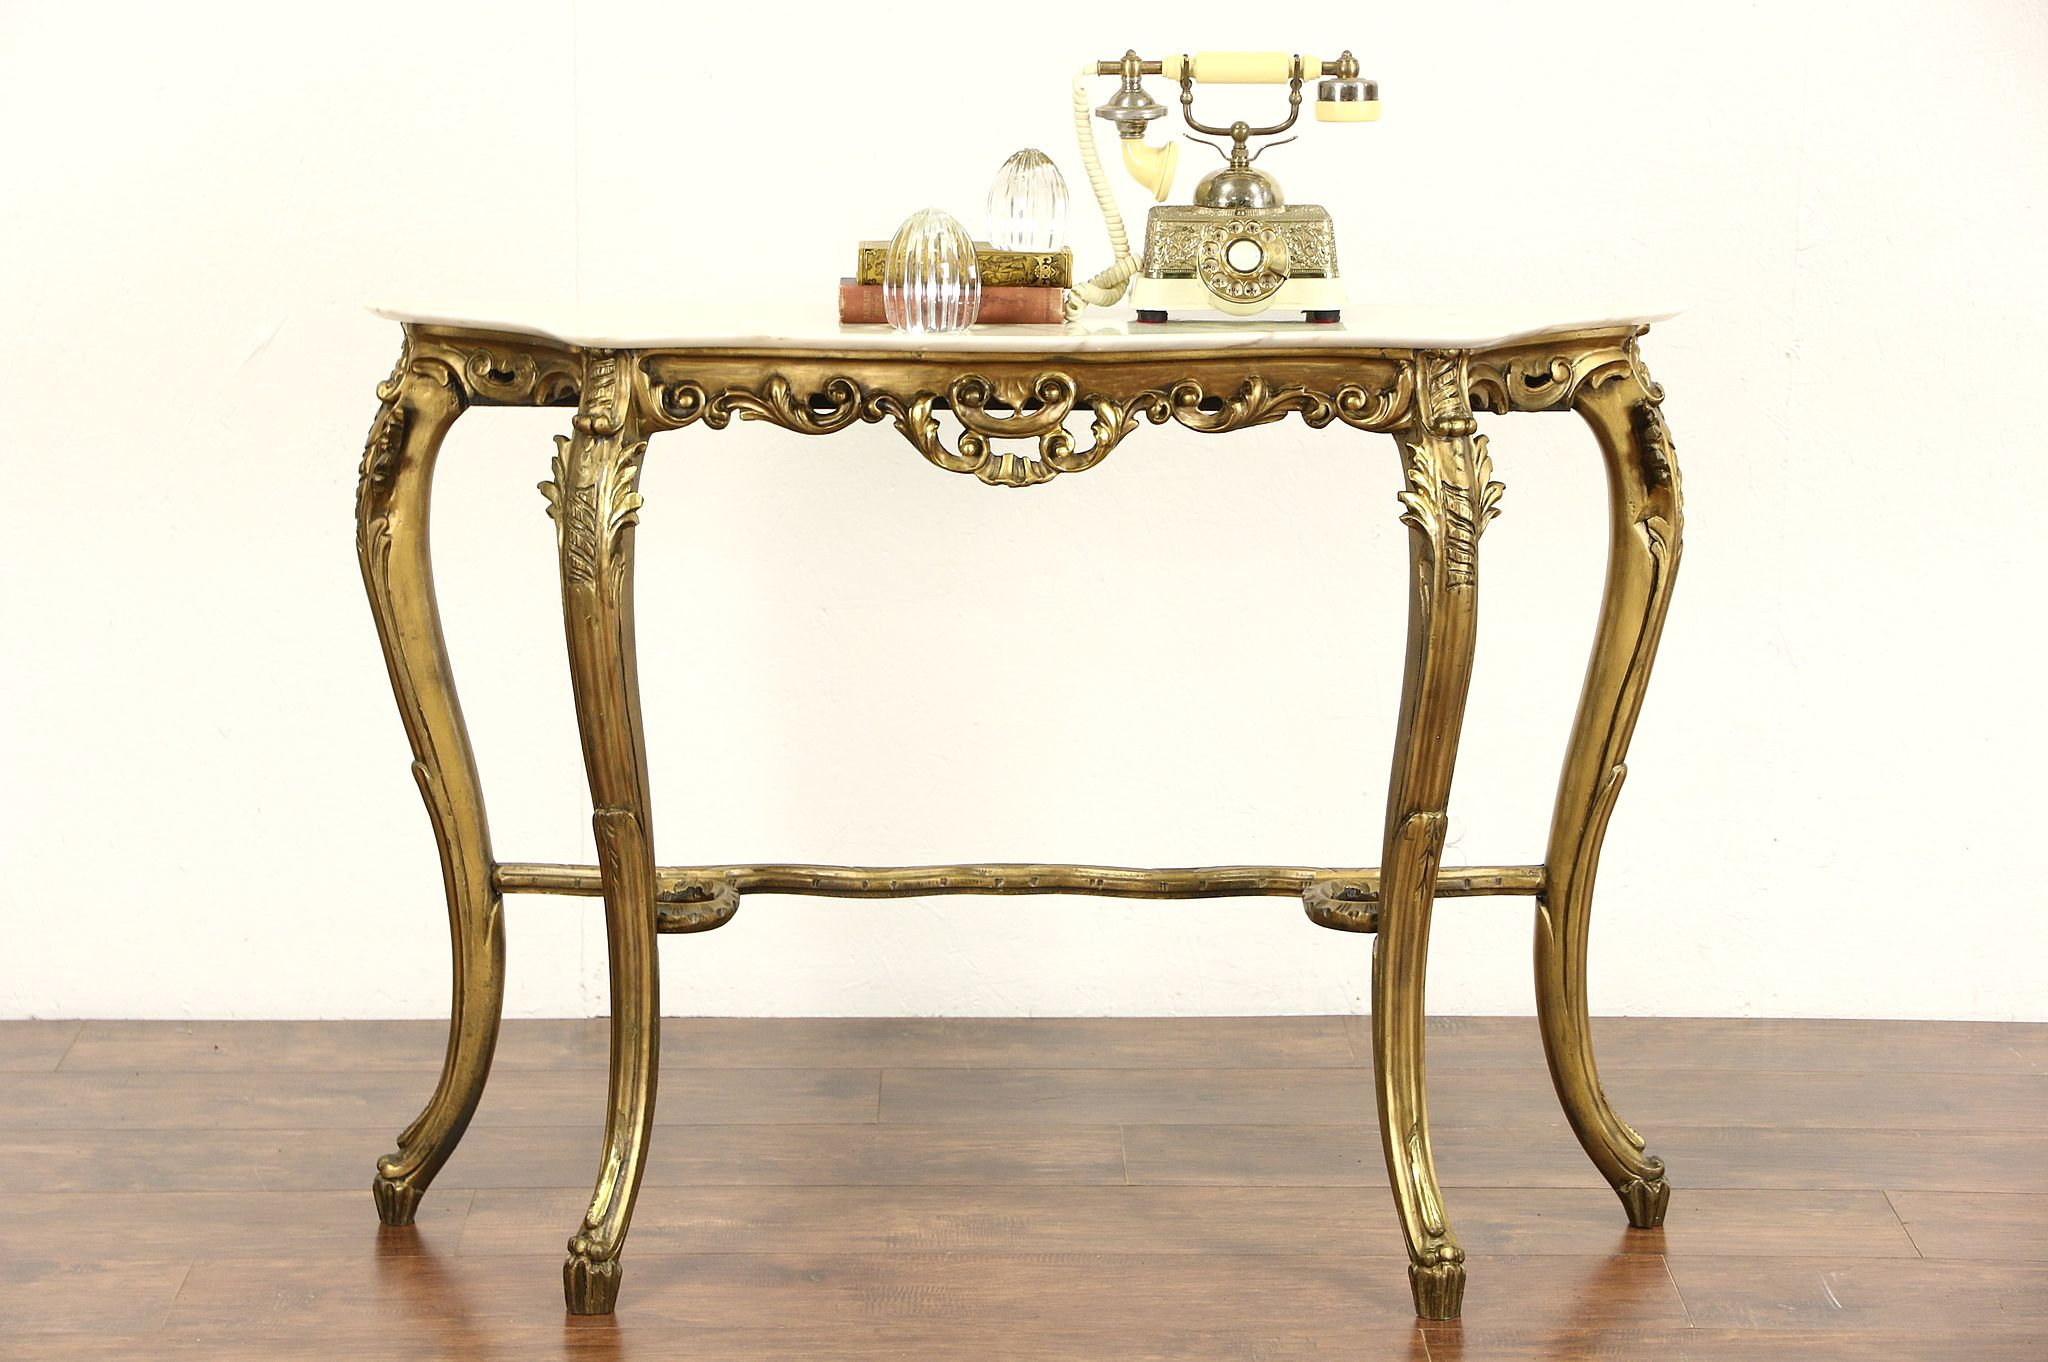 Sensational Italian Carved 1930S Antique Burnished Gold Hall Console Table Marble Top Andrewgaddart Wooden Chair Designs For Living Room Andrewgaddartcom